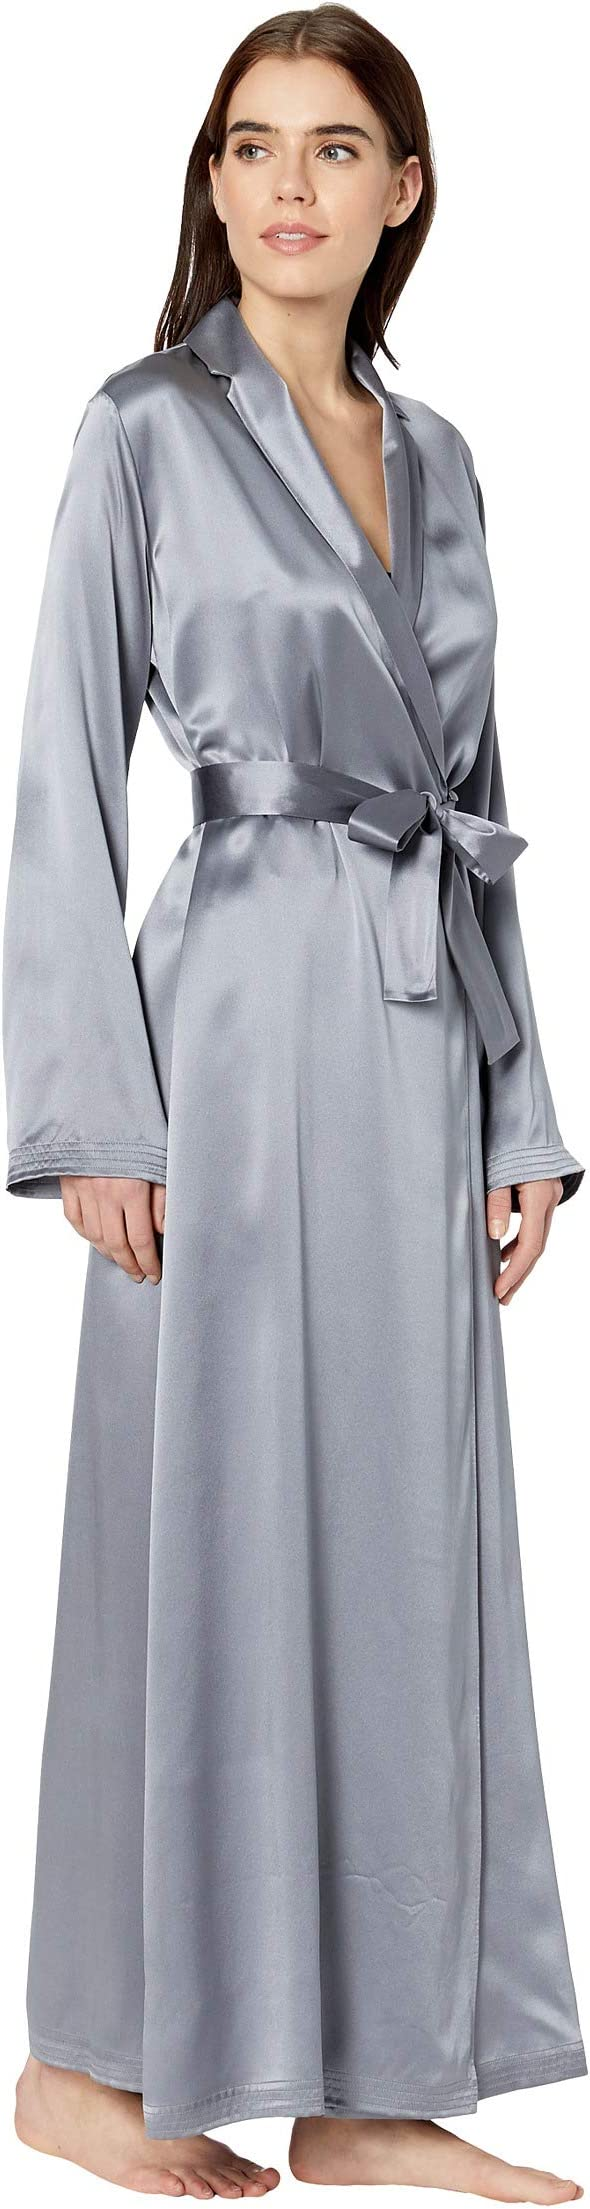 La Perla Silk Long Robe   The Style Room, powered by Zappos